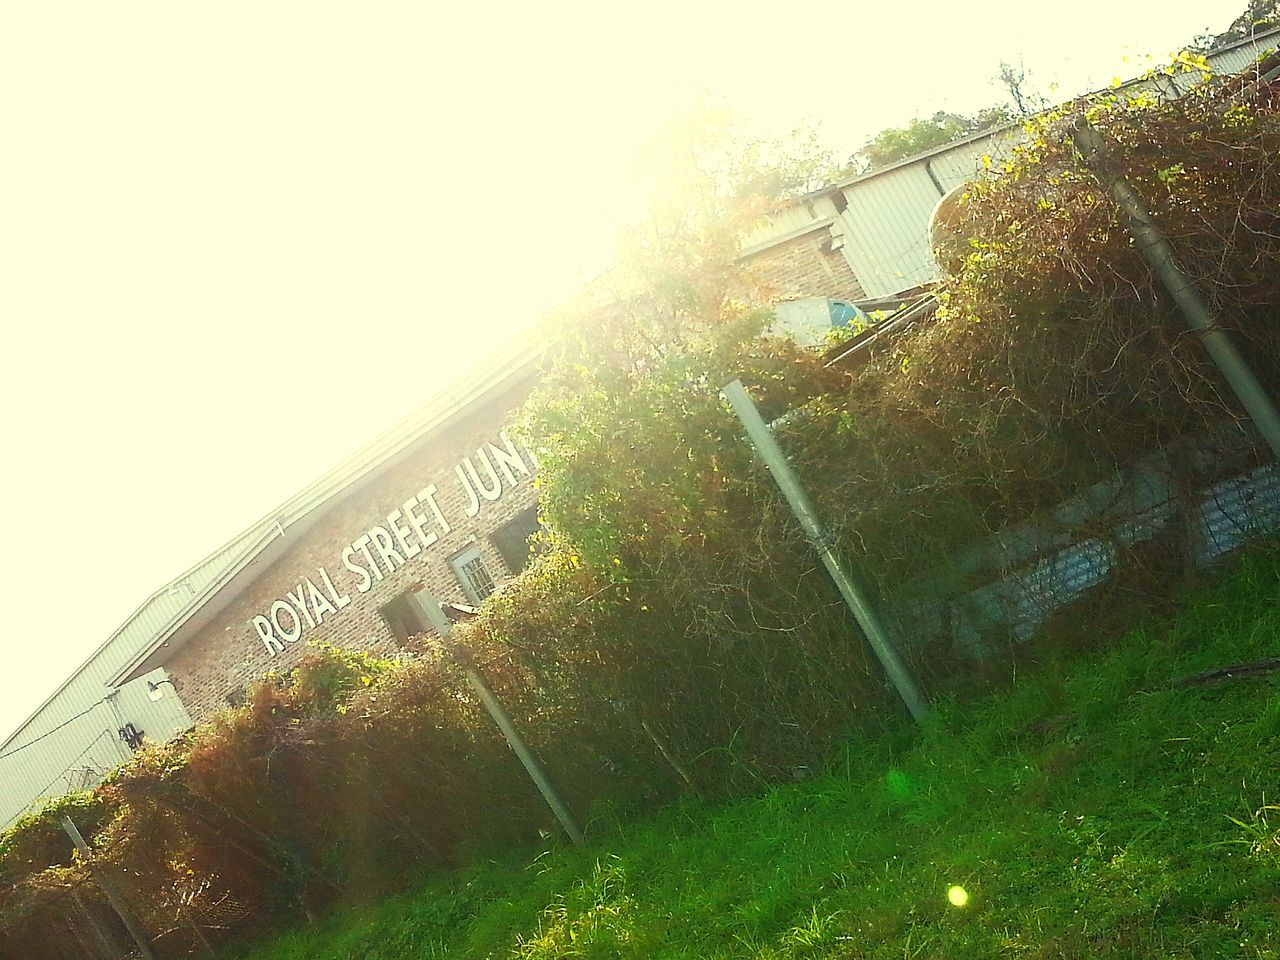 Old But Awesome Lonely Place  City Life Downtown Mobile Alabama (: Hanging Out Old Junkyard.